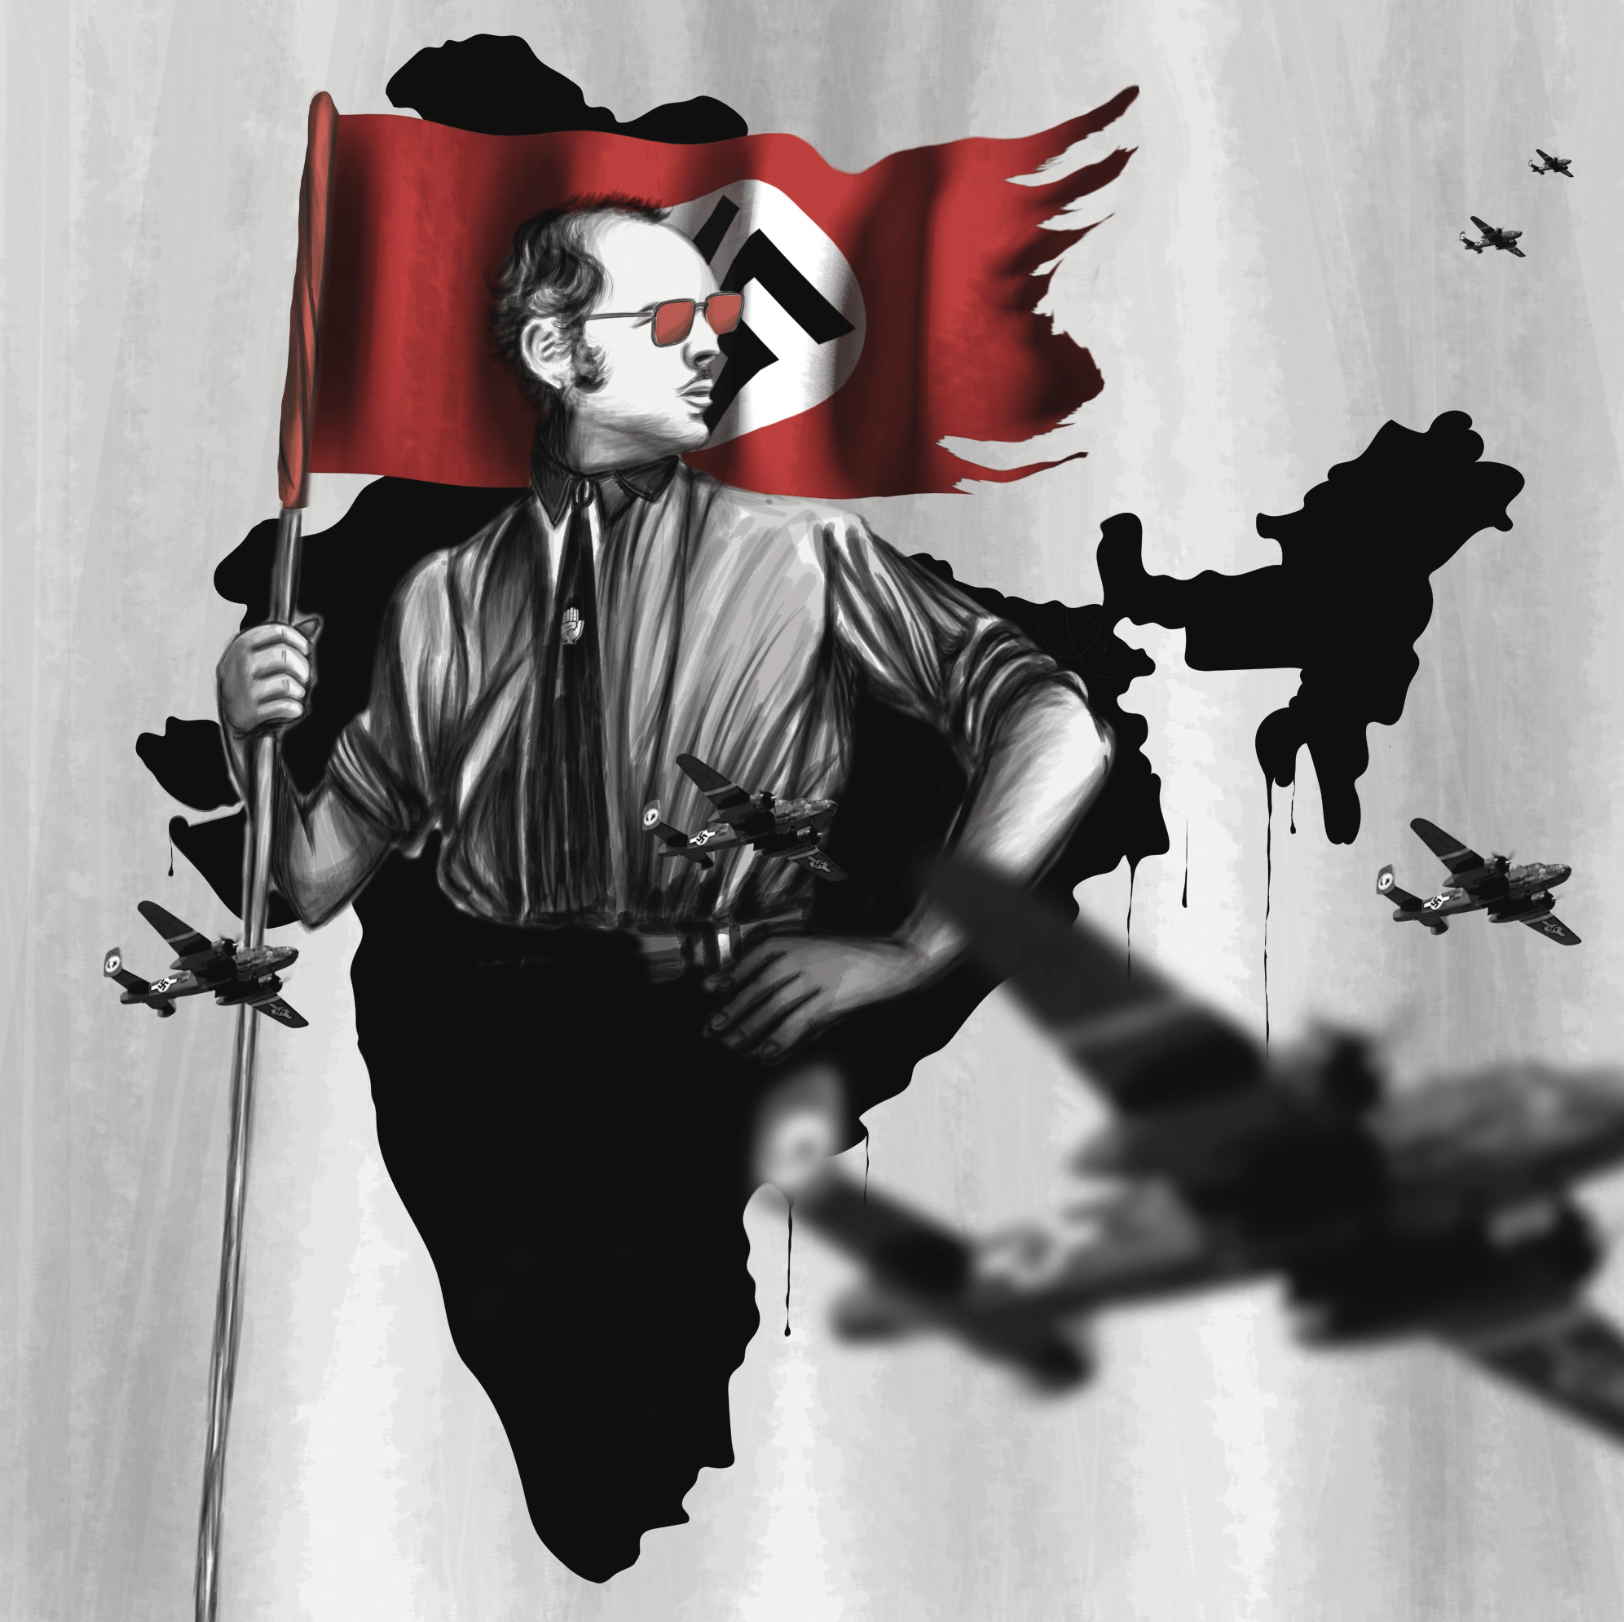 """1980 : """"Sanjay Gandhi was touted as the great dictator of India. A man of two sides, with people divided in opinion whether to love him or hate him. I want to portray that dilemma against a backdrop of the India that could be, had he survived the plane crash on June 23, 1980."""" ~ Kunel Gaur"""